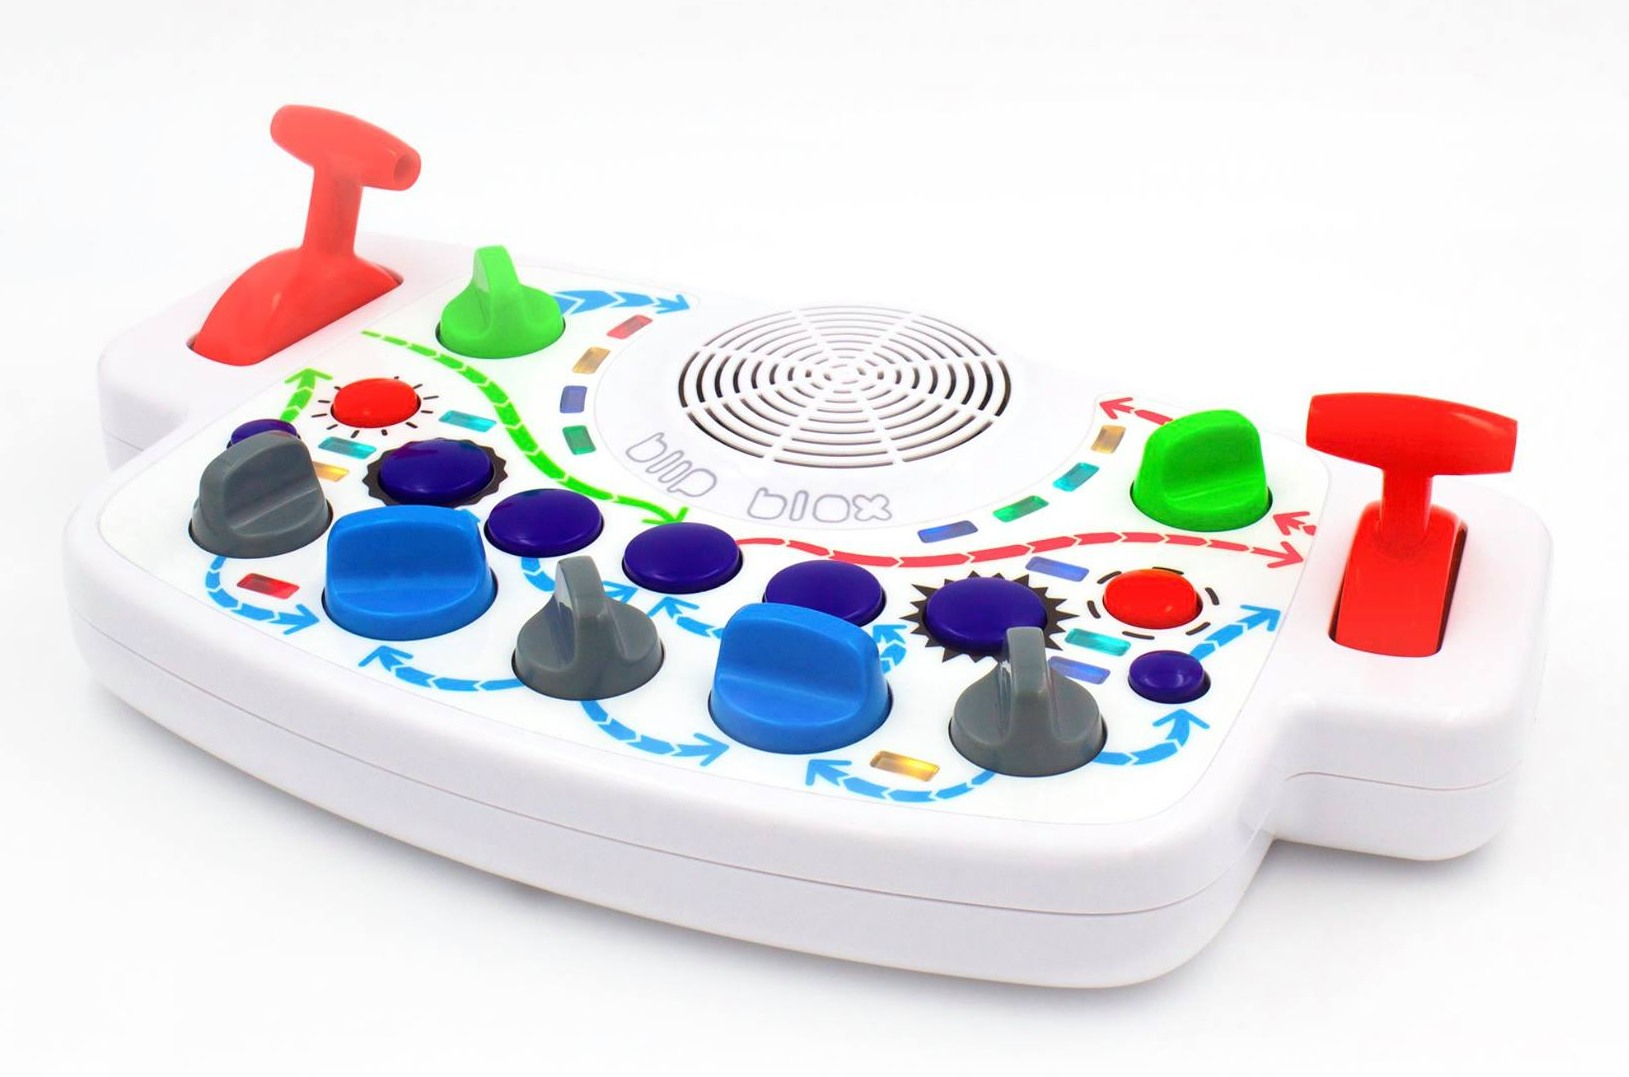 Blipblox could be 'my first synth' for kids big and small